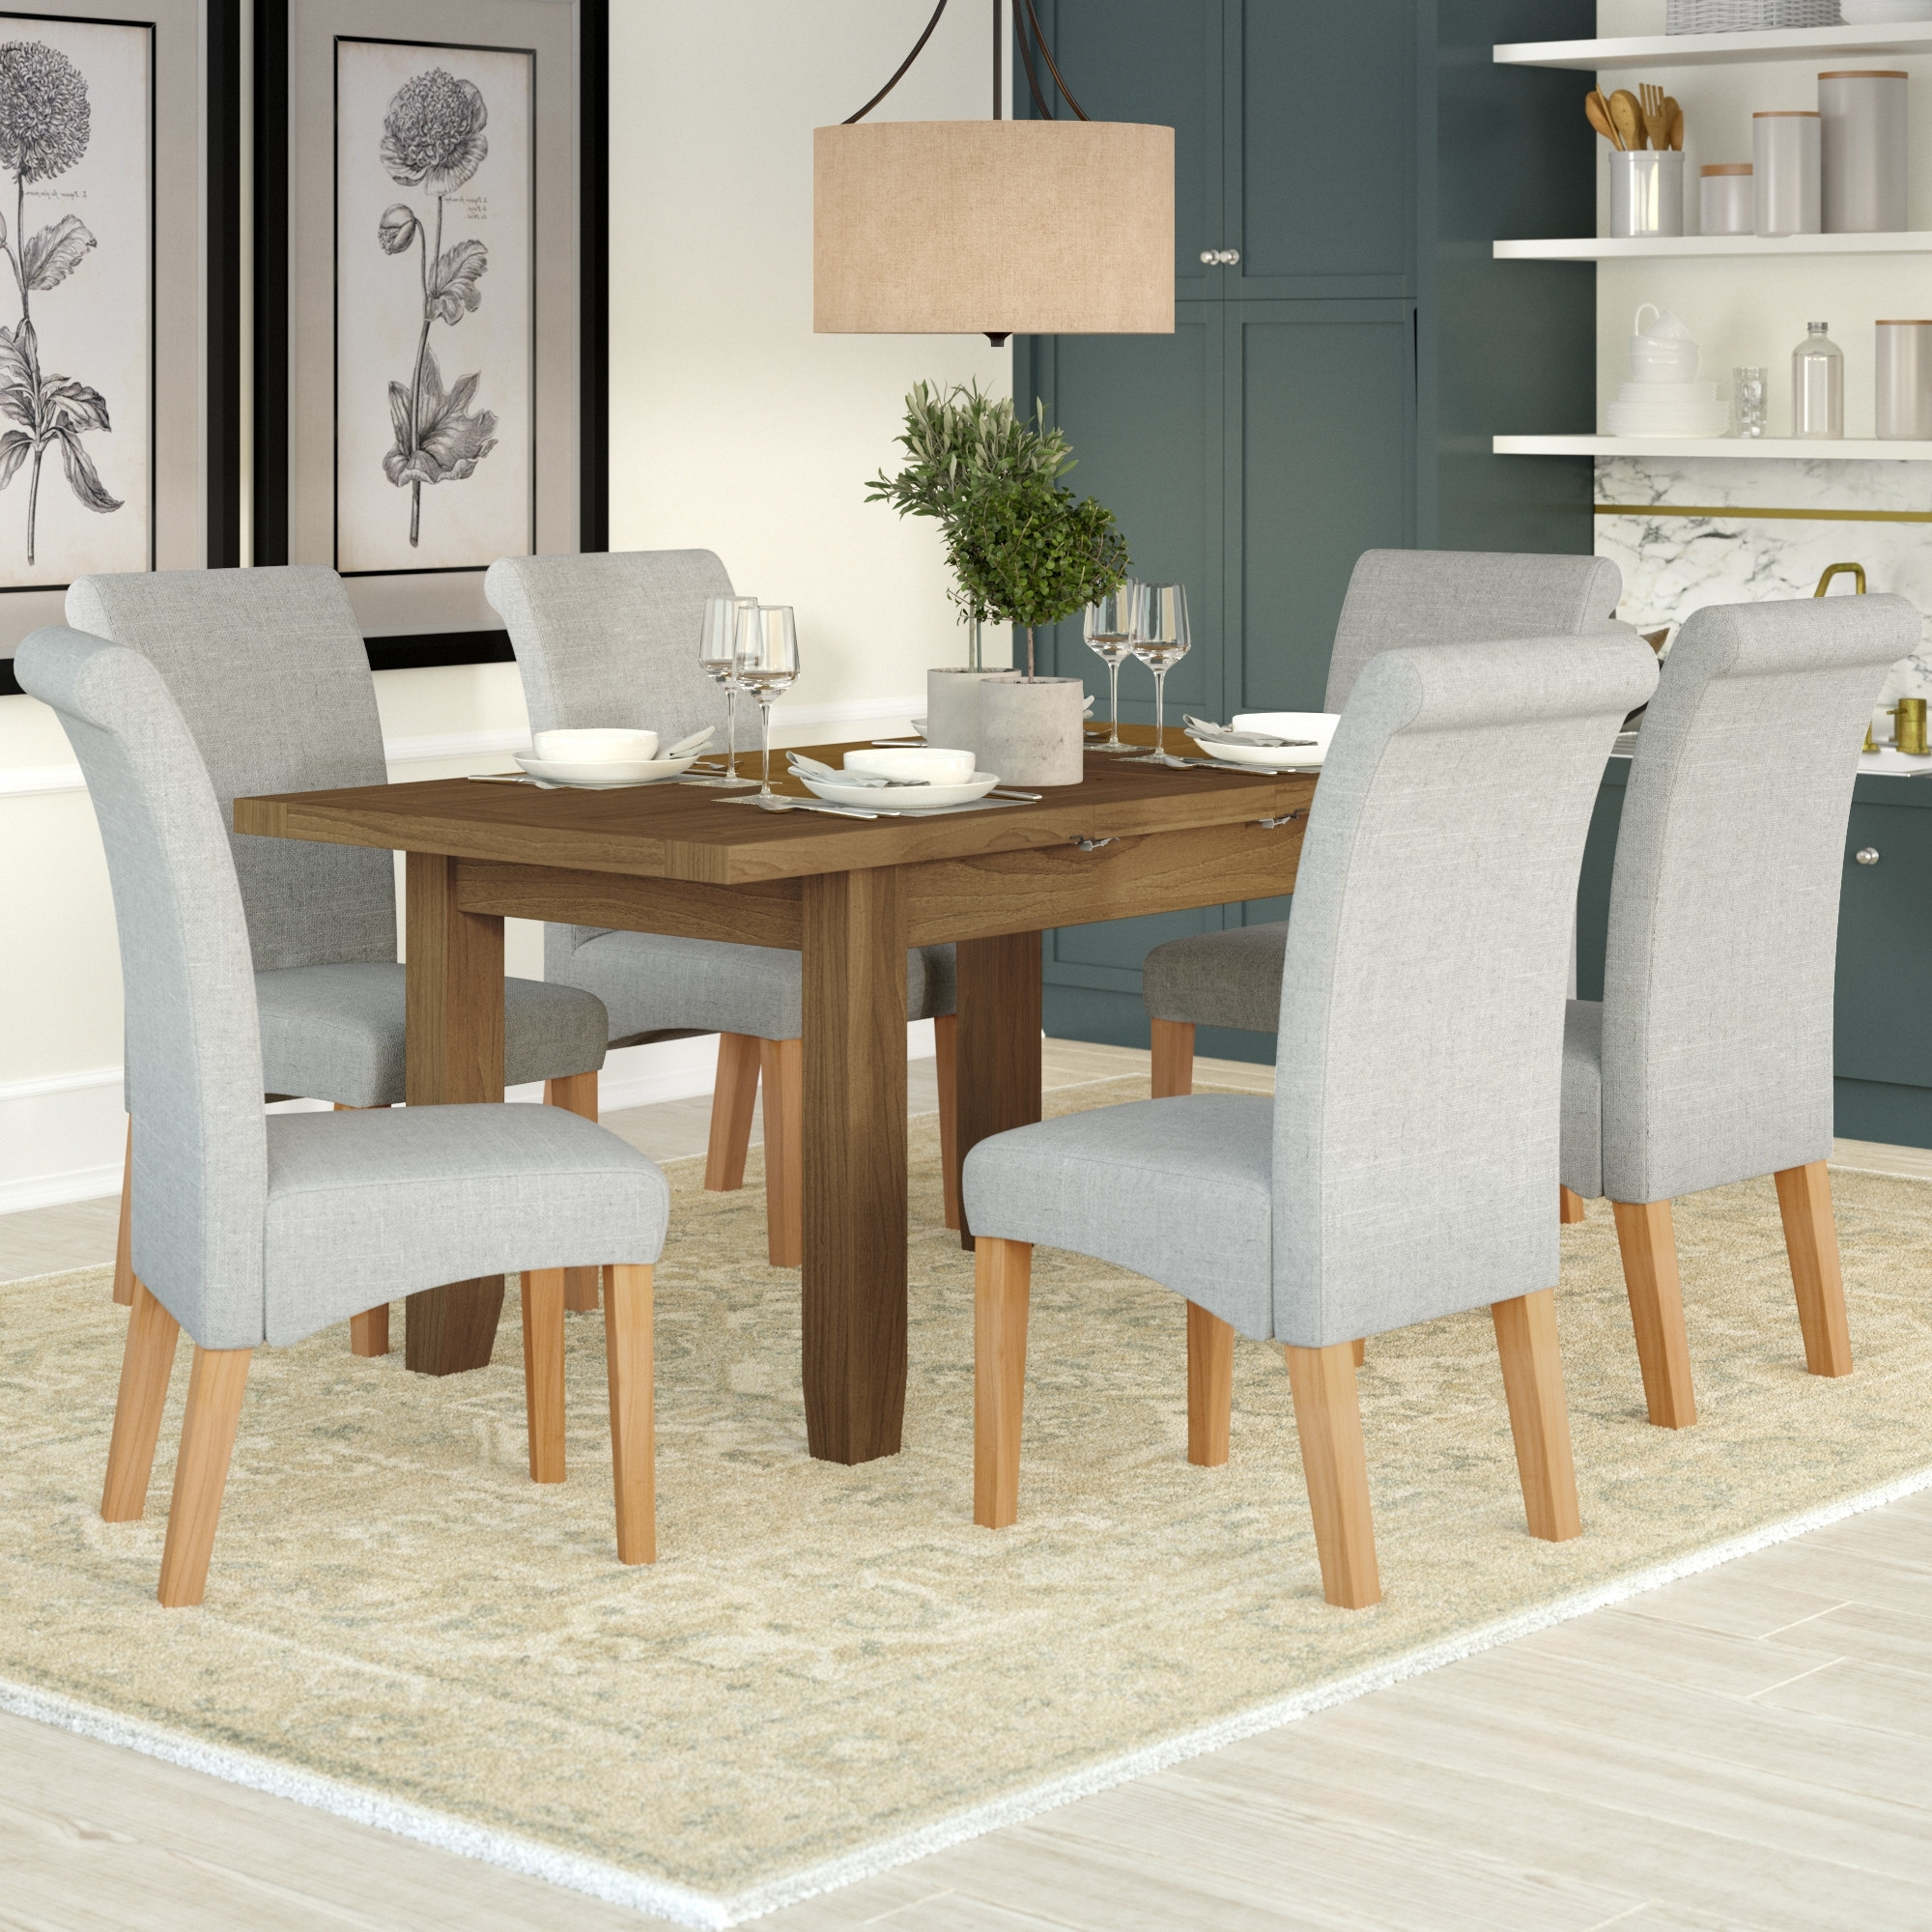 Three Posts Berwick Extendable Dining Table And 6 Chairs & Reviews Pertaining To Favorite Extendable Dining Tables And 6 Chairs (View 23 of 25)